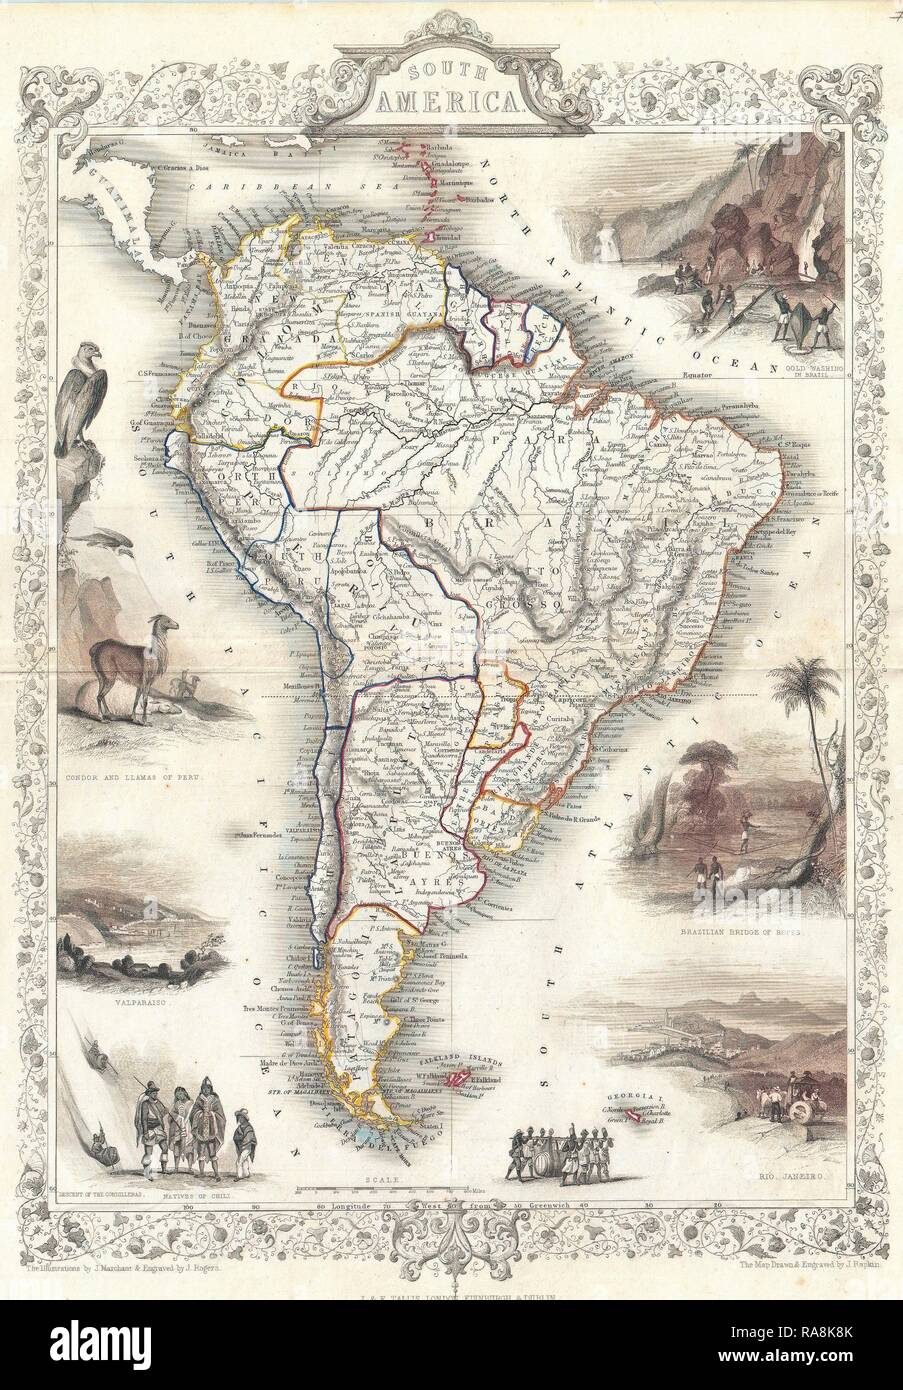 1850, Tallis Map of South America. Reimagined by Gibon. Classic art with a modern twist reimagined - Stock Image